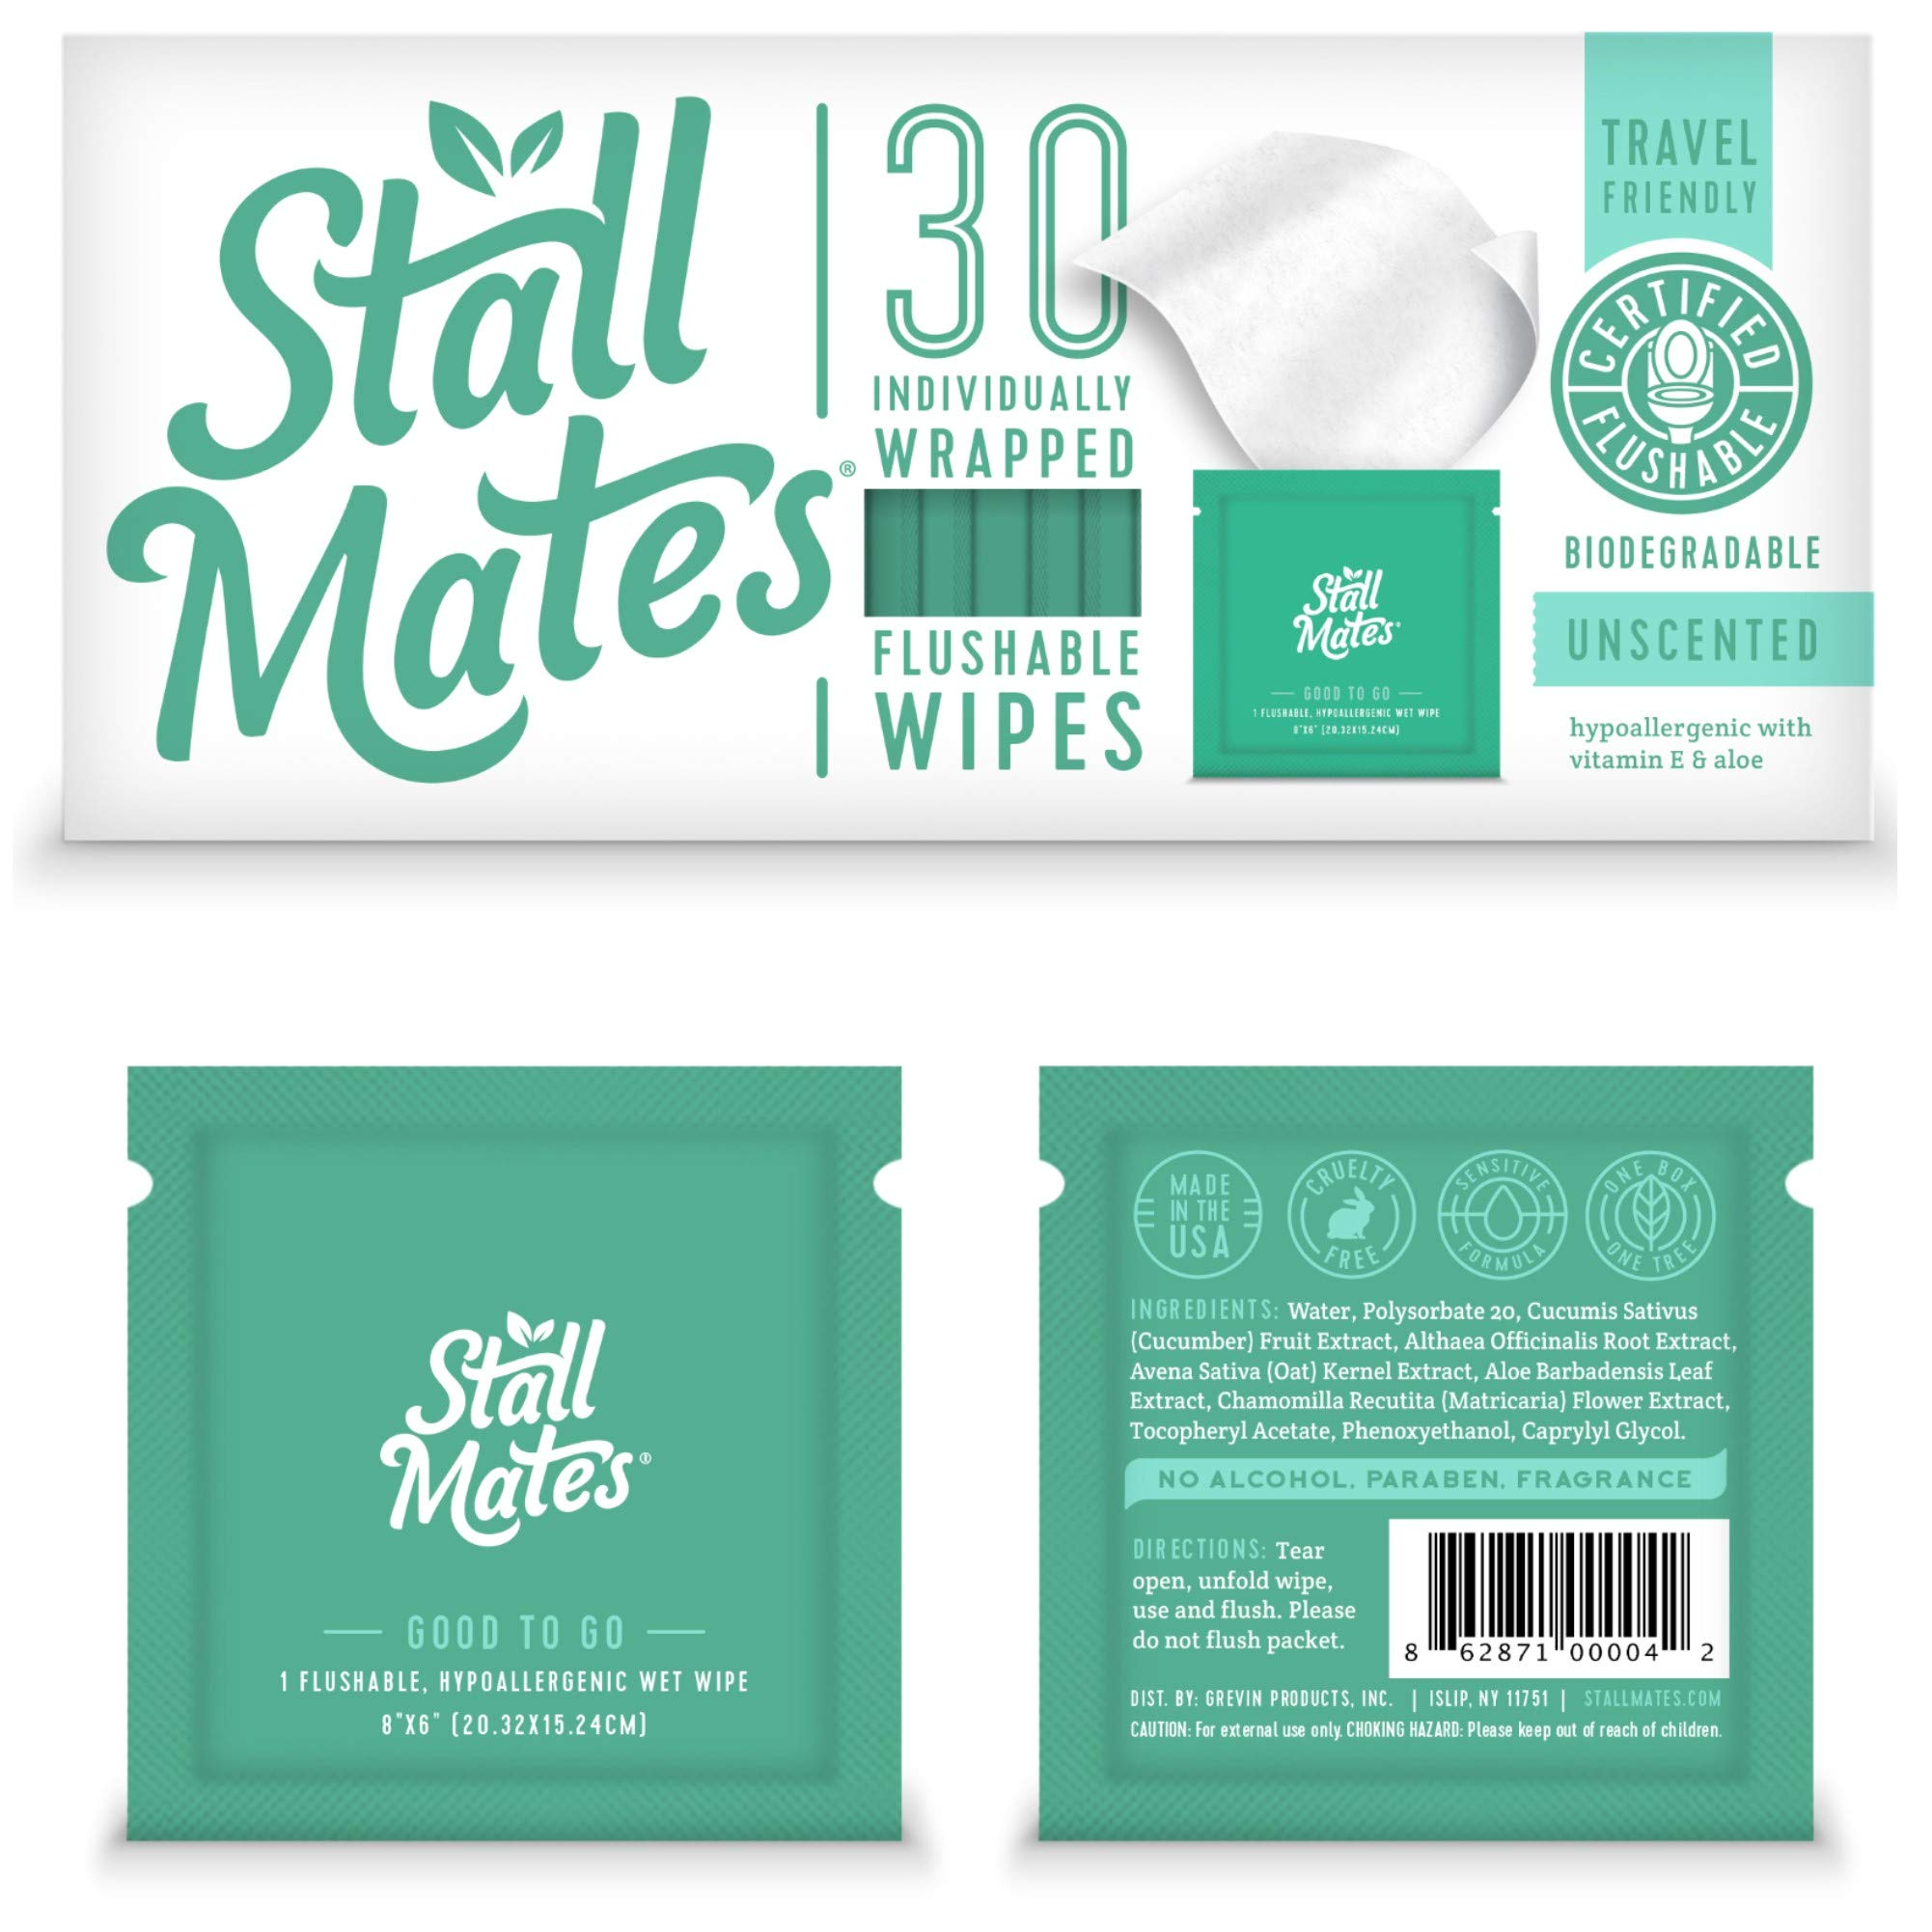 Stall Mates: Flushable, Individually Wrapped Wipes for Travel. Unscented with Vitamin-E & Aloe, 100% Biodegradable (30 on-The-go Singles) by Stall Mates Wipes